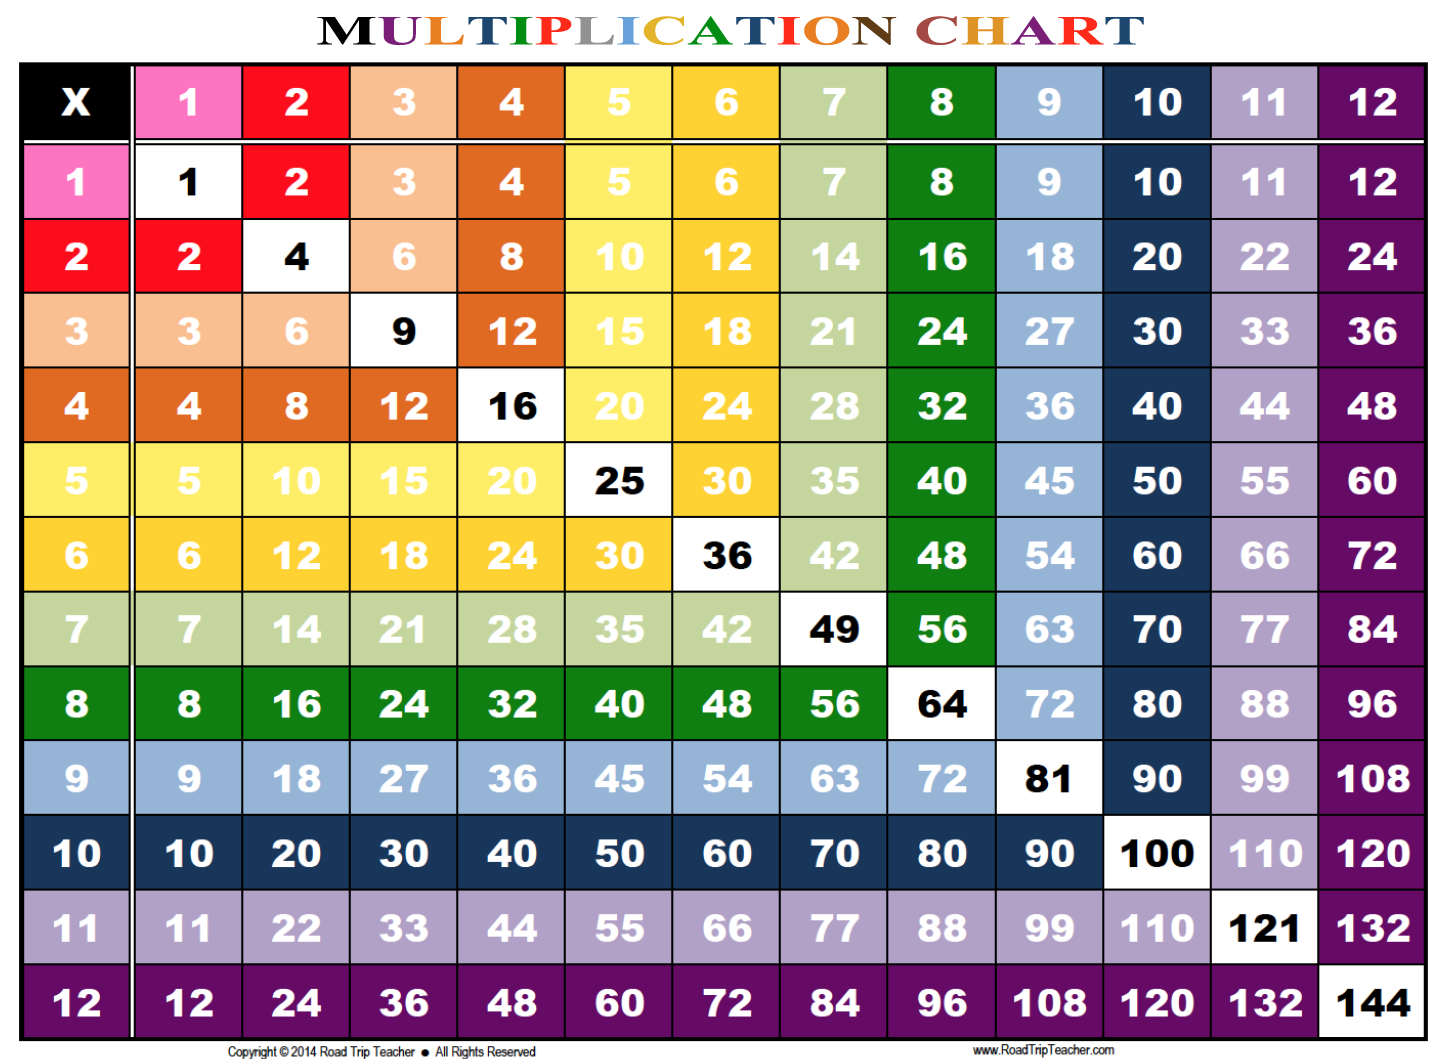 Multiplication Chart 1 12 Printable | Math | Multiplication Chart - Free Printable Math Multiplication Charts